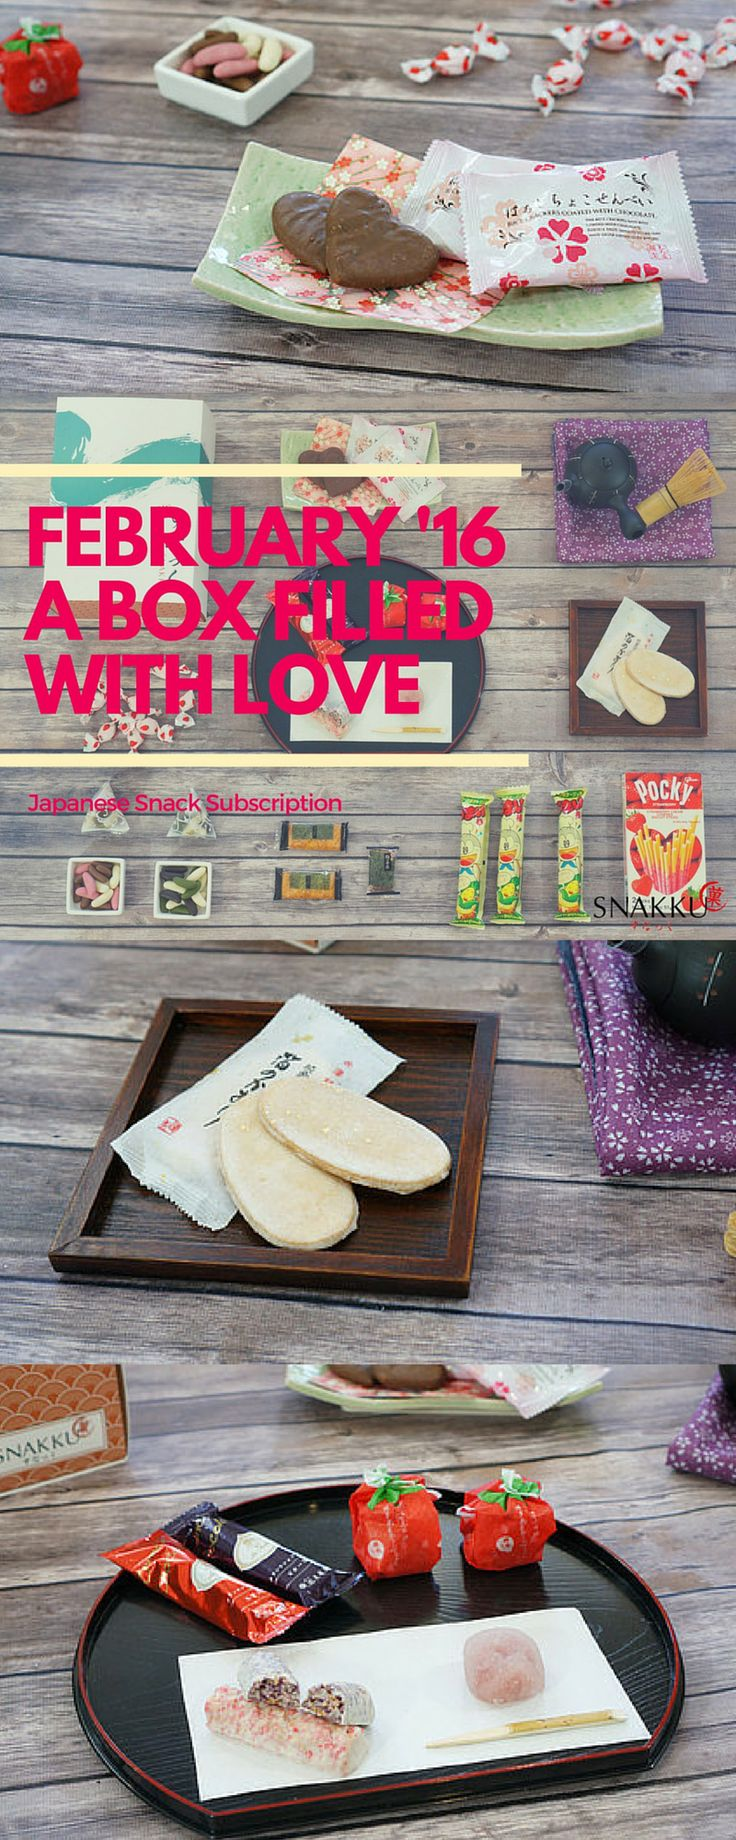 Our February Japanese snack box was filled with love! Featuring strawberries and chocolate, we have strawberry mochi, heart-shaped chocolate sense, okaki crackers with real gold flakes and more!